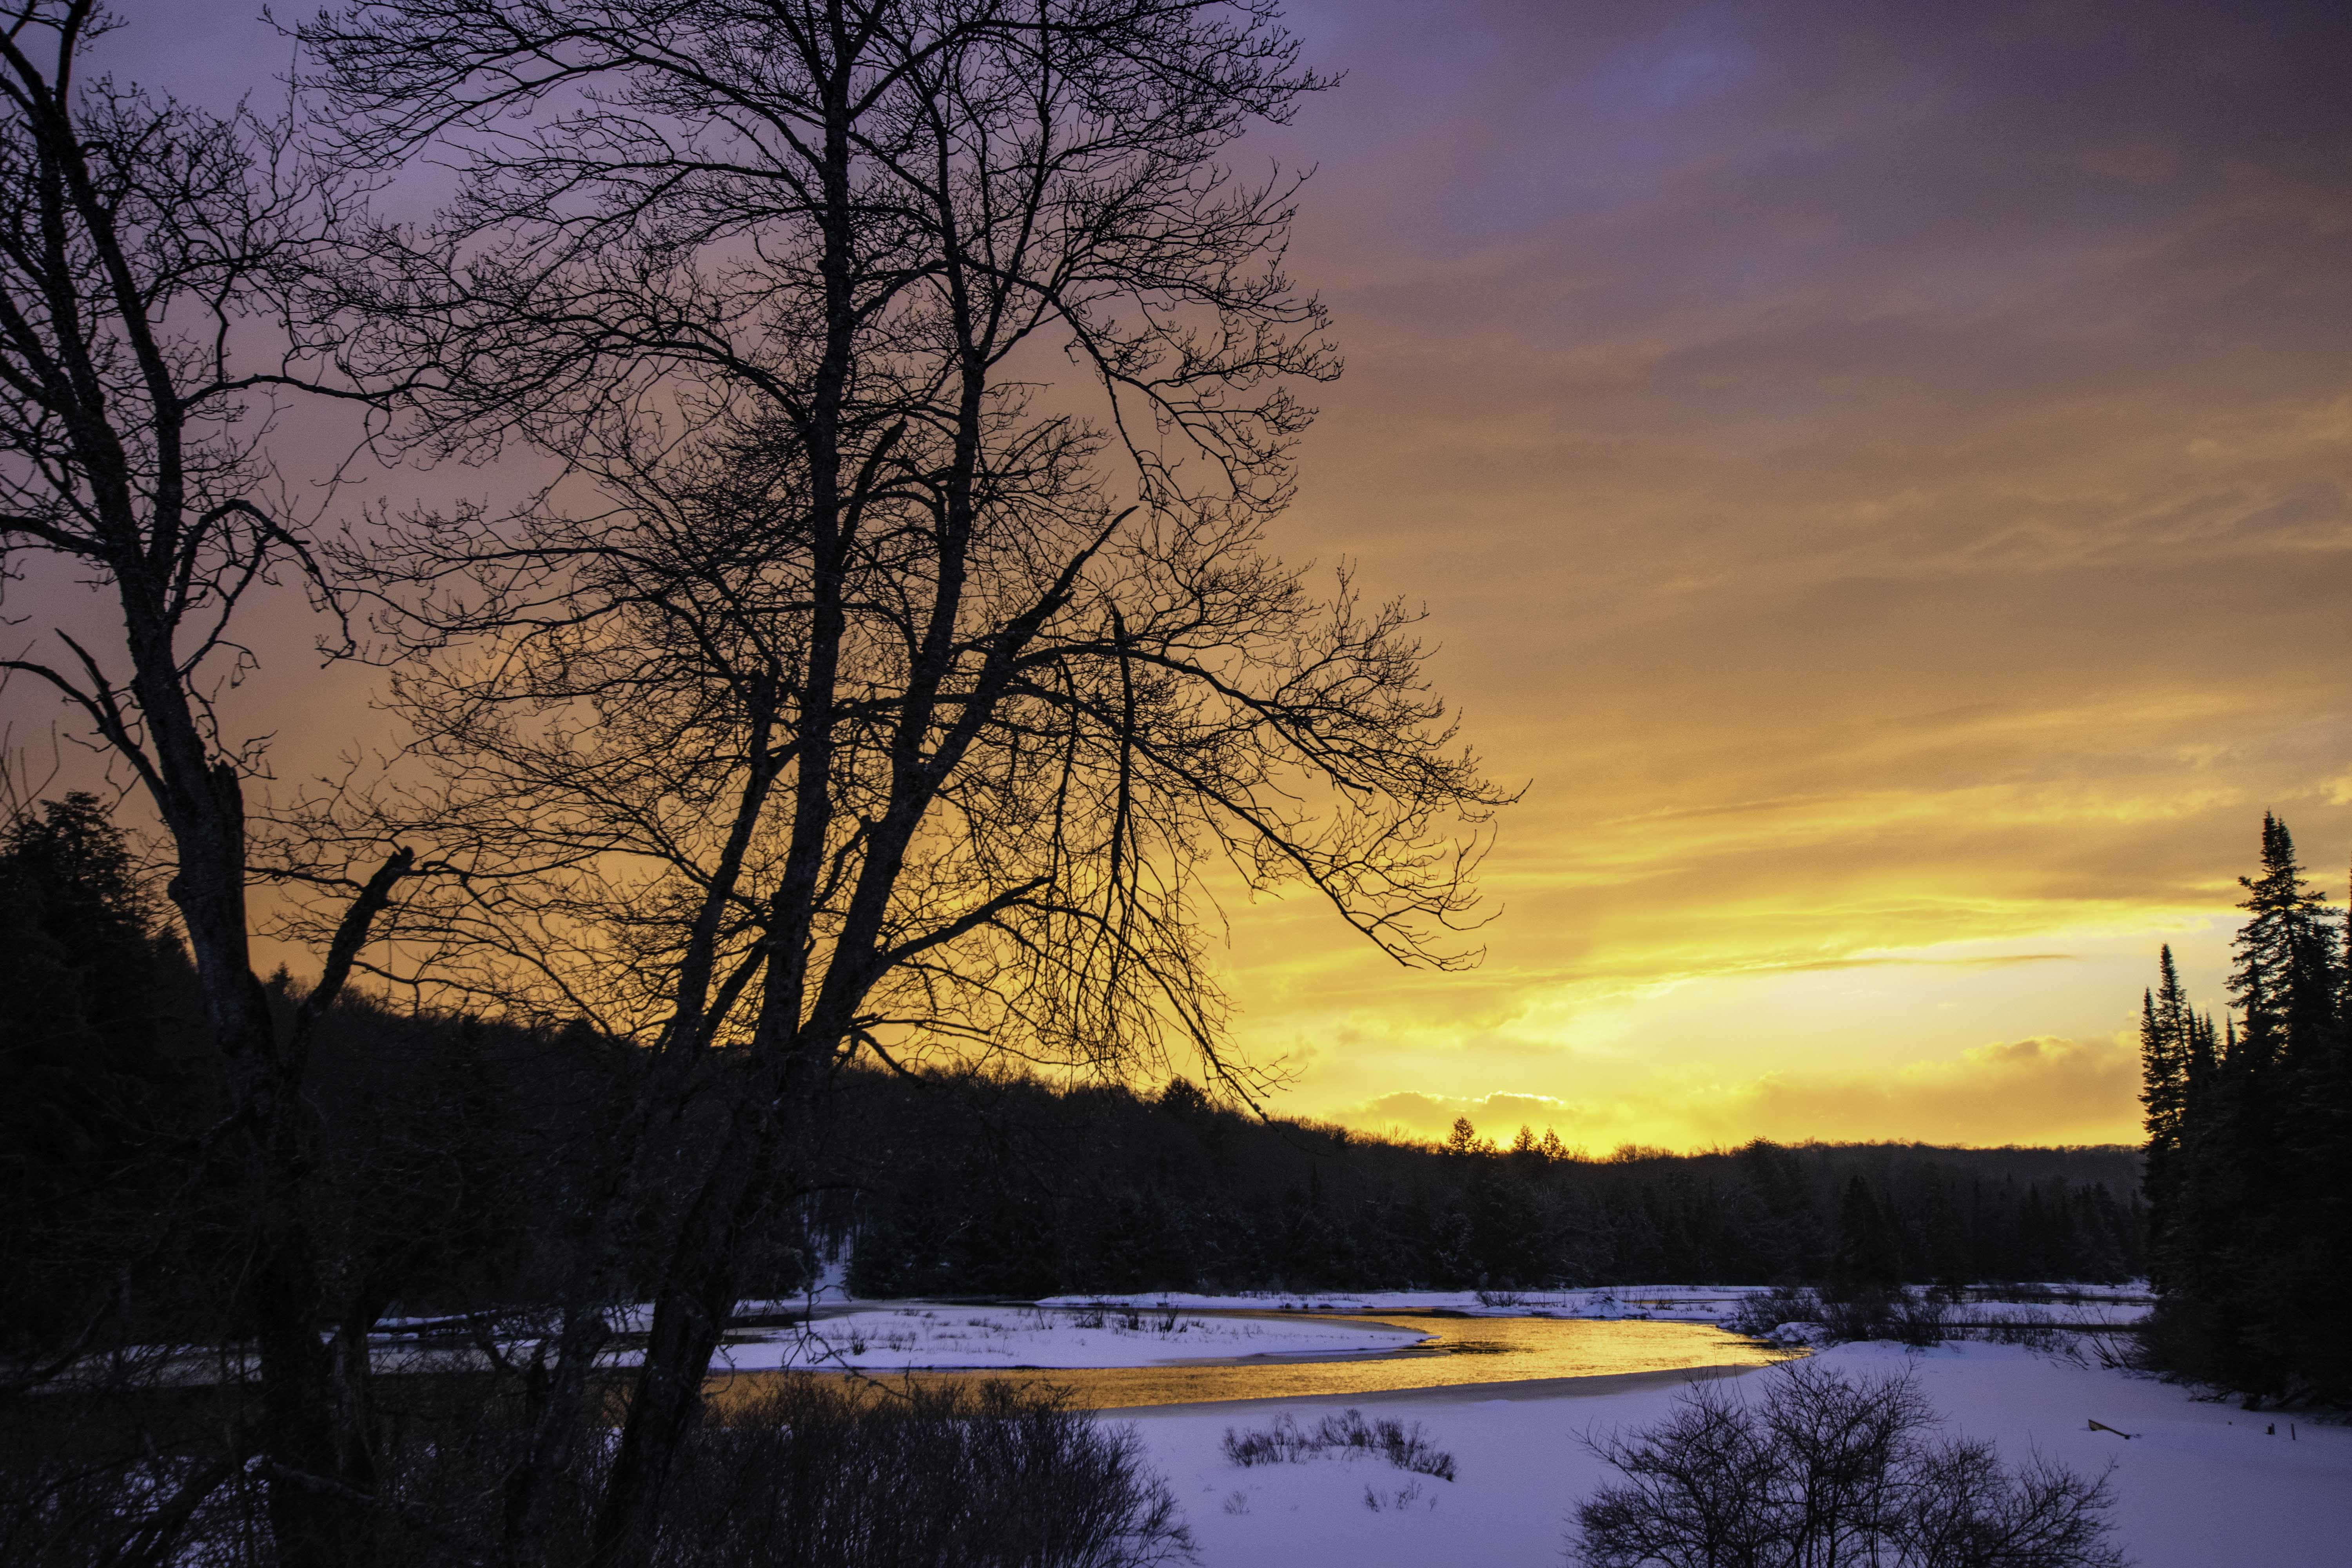 Sunset over Moose RIver from Greenbridge with tree in Thendara NY